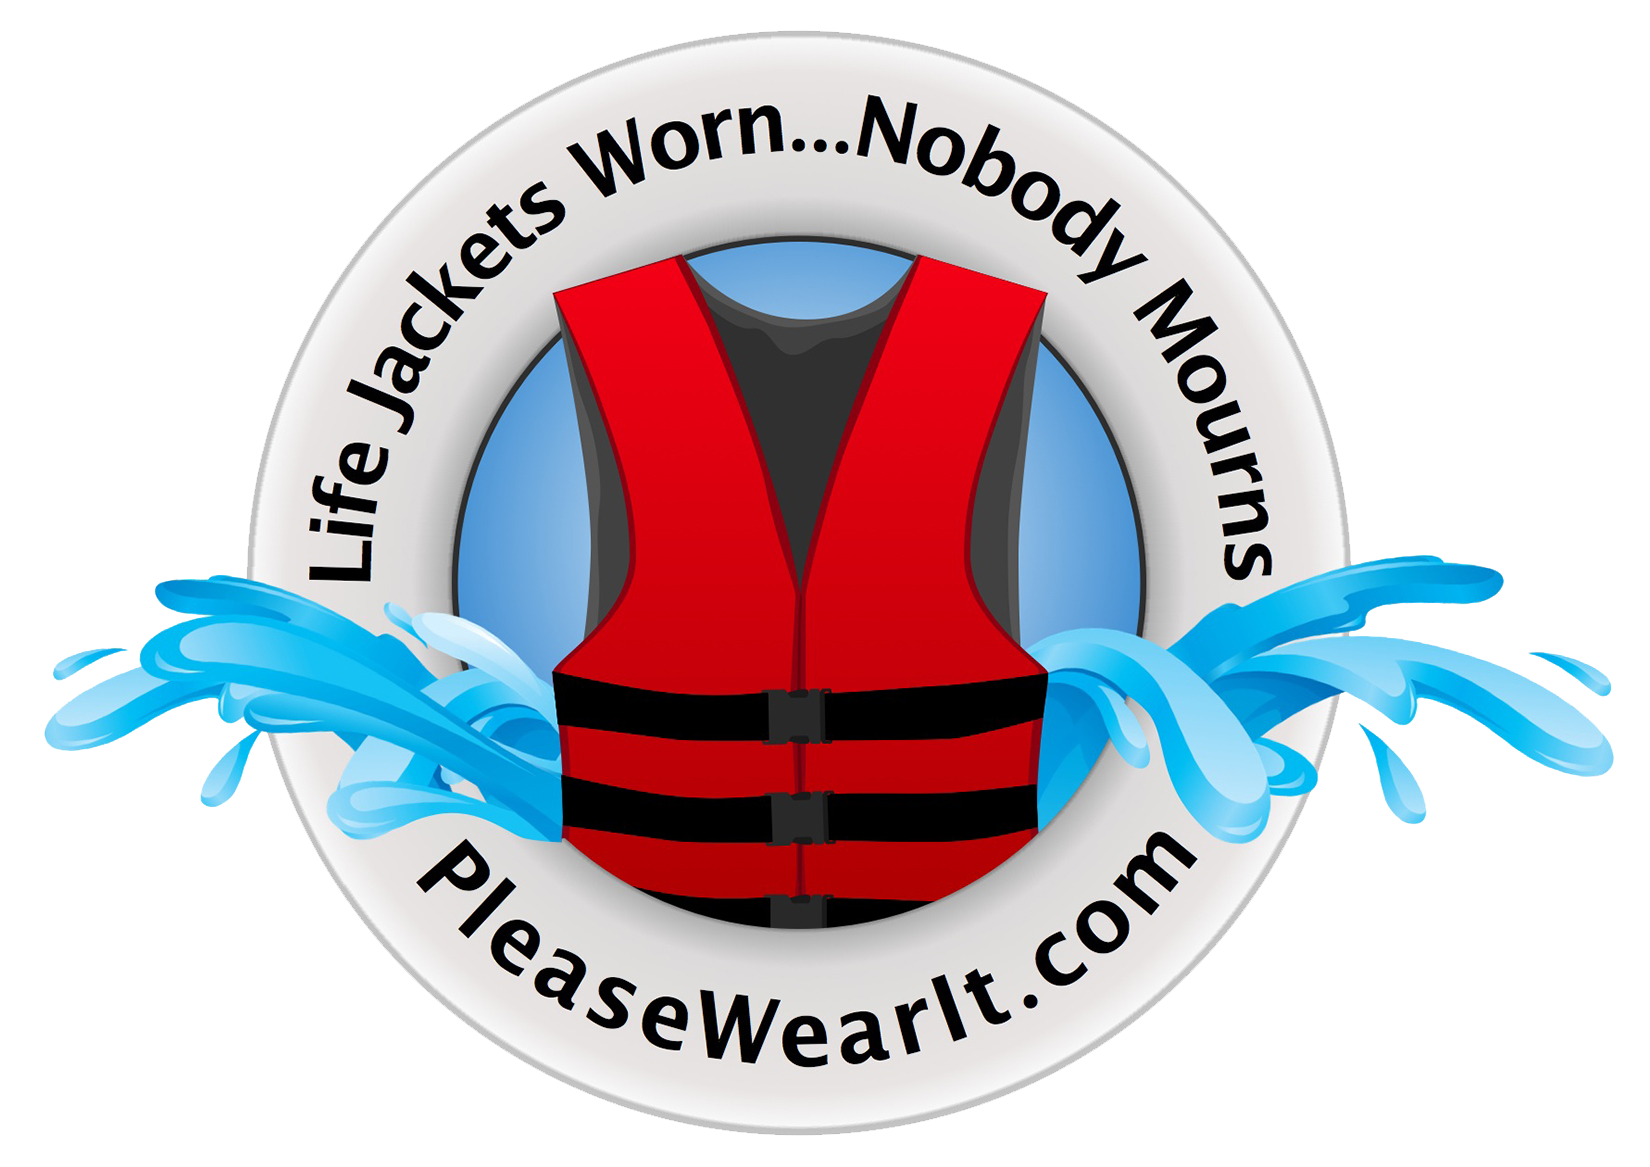 Life jacket worn, nobody morns.